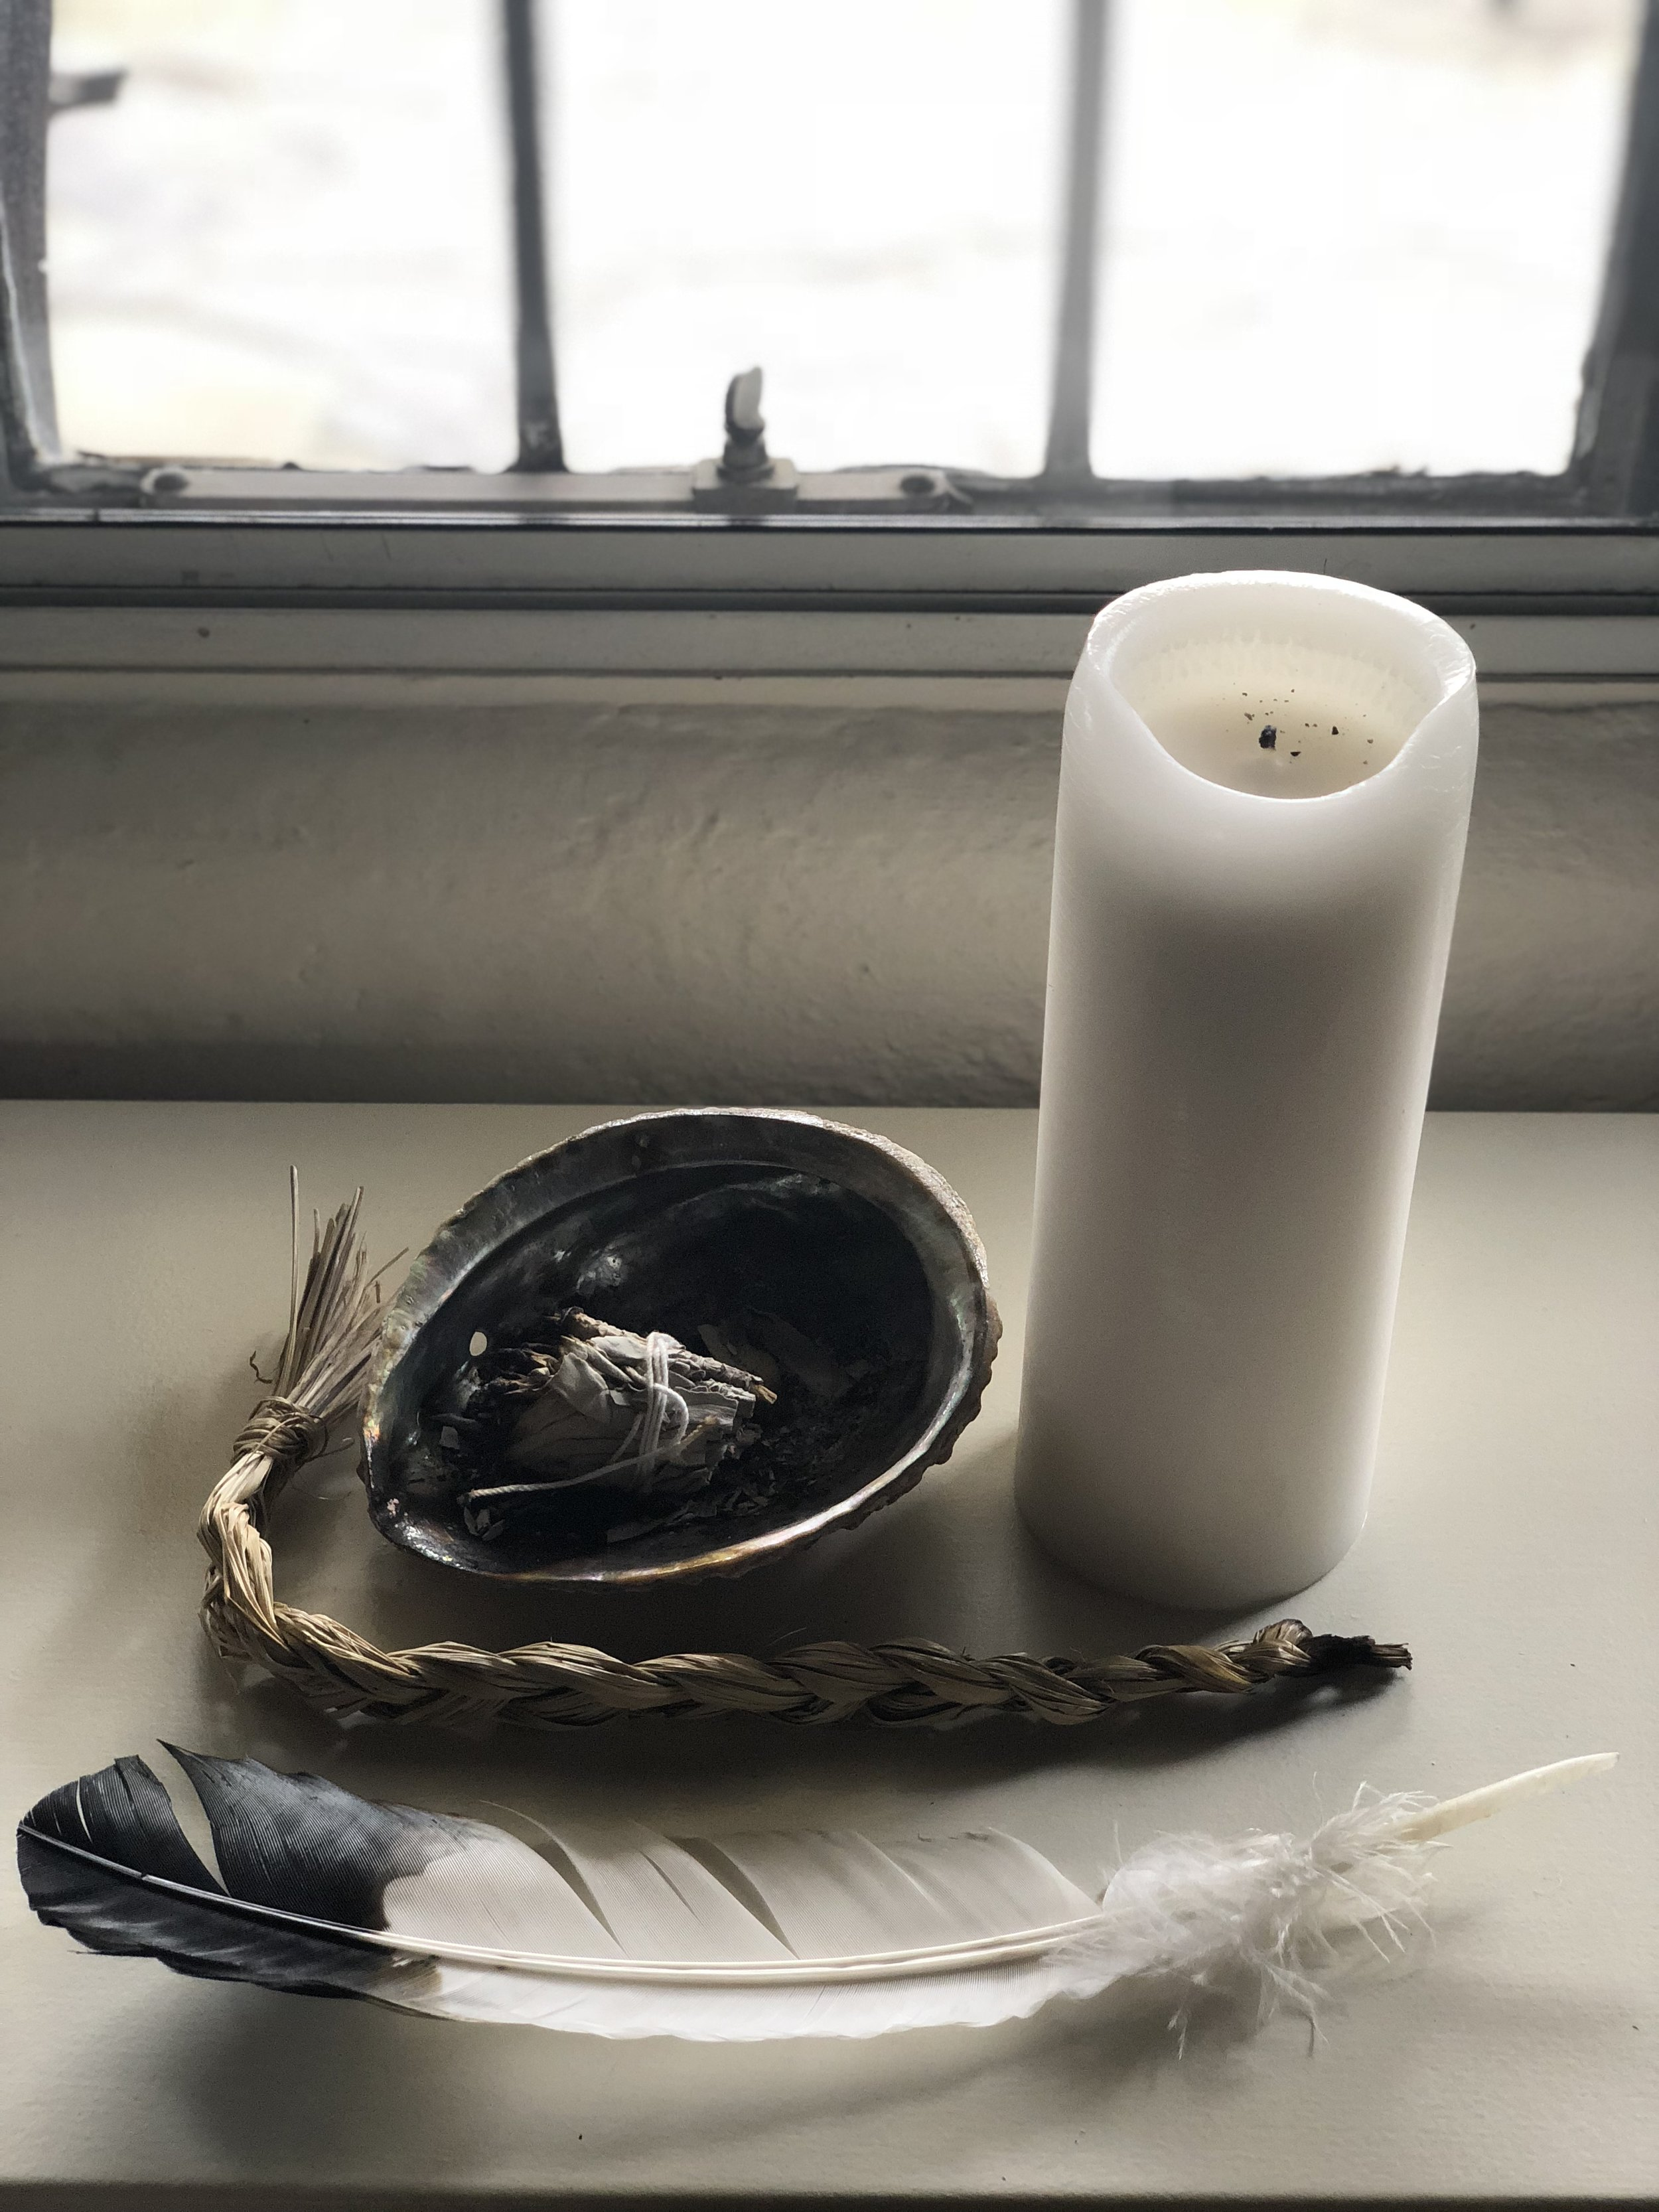 Supplies for cleansing your space